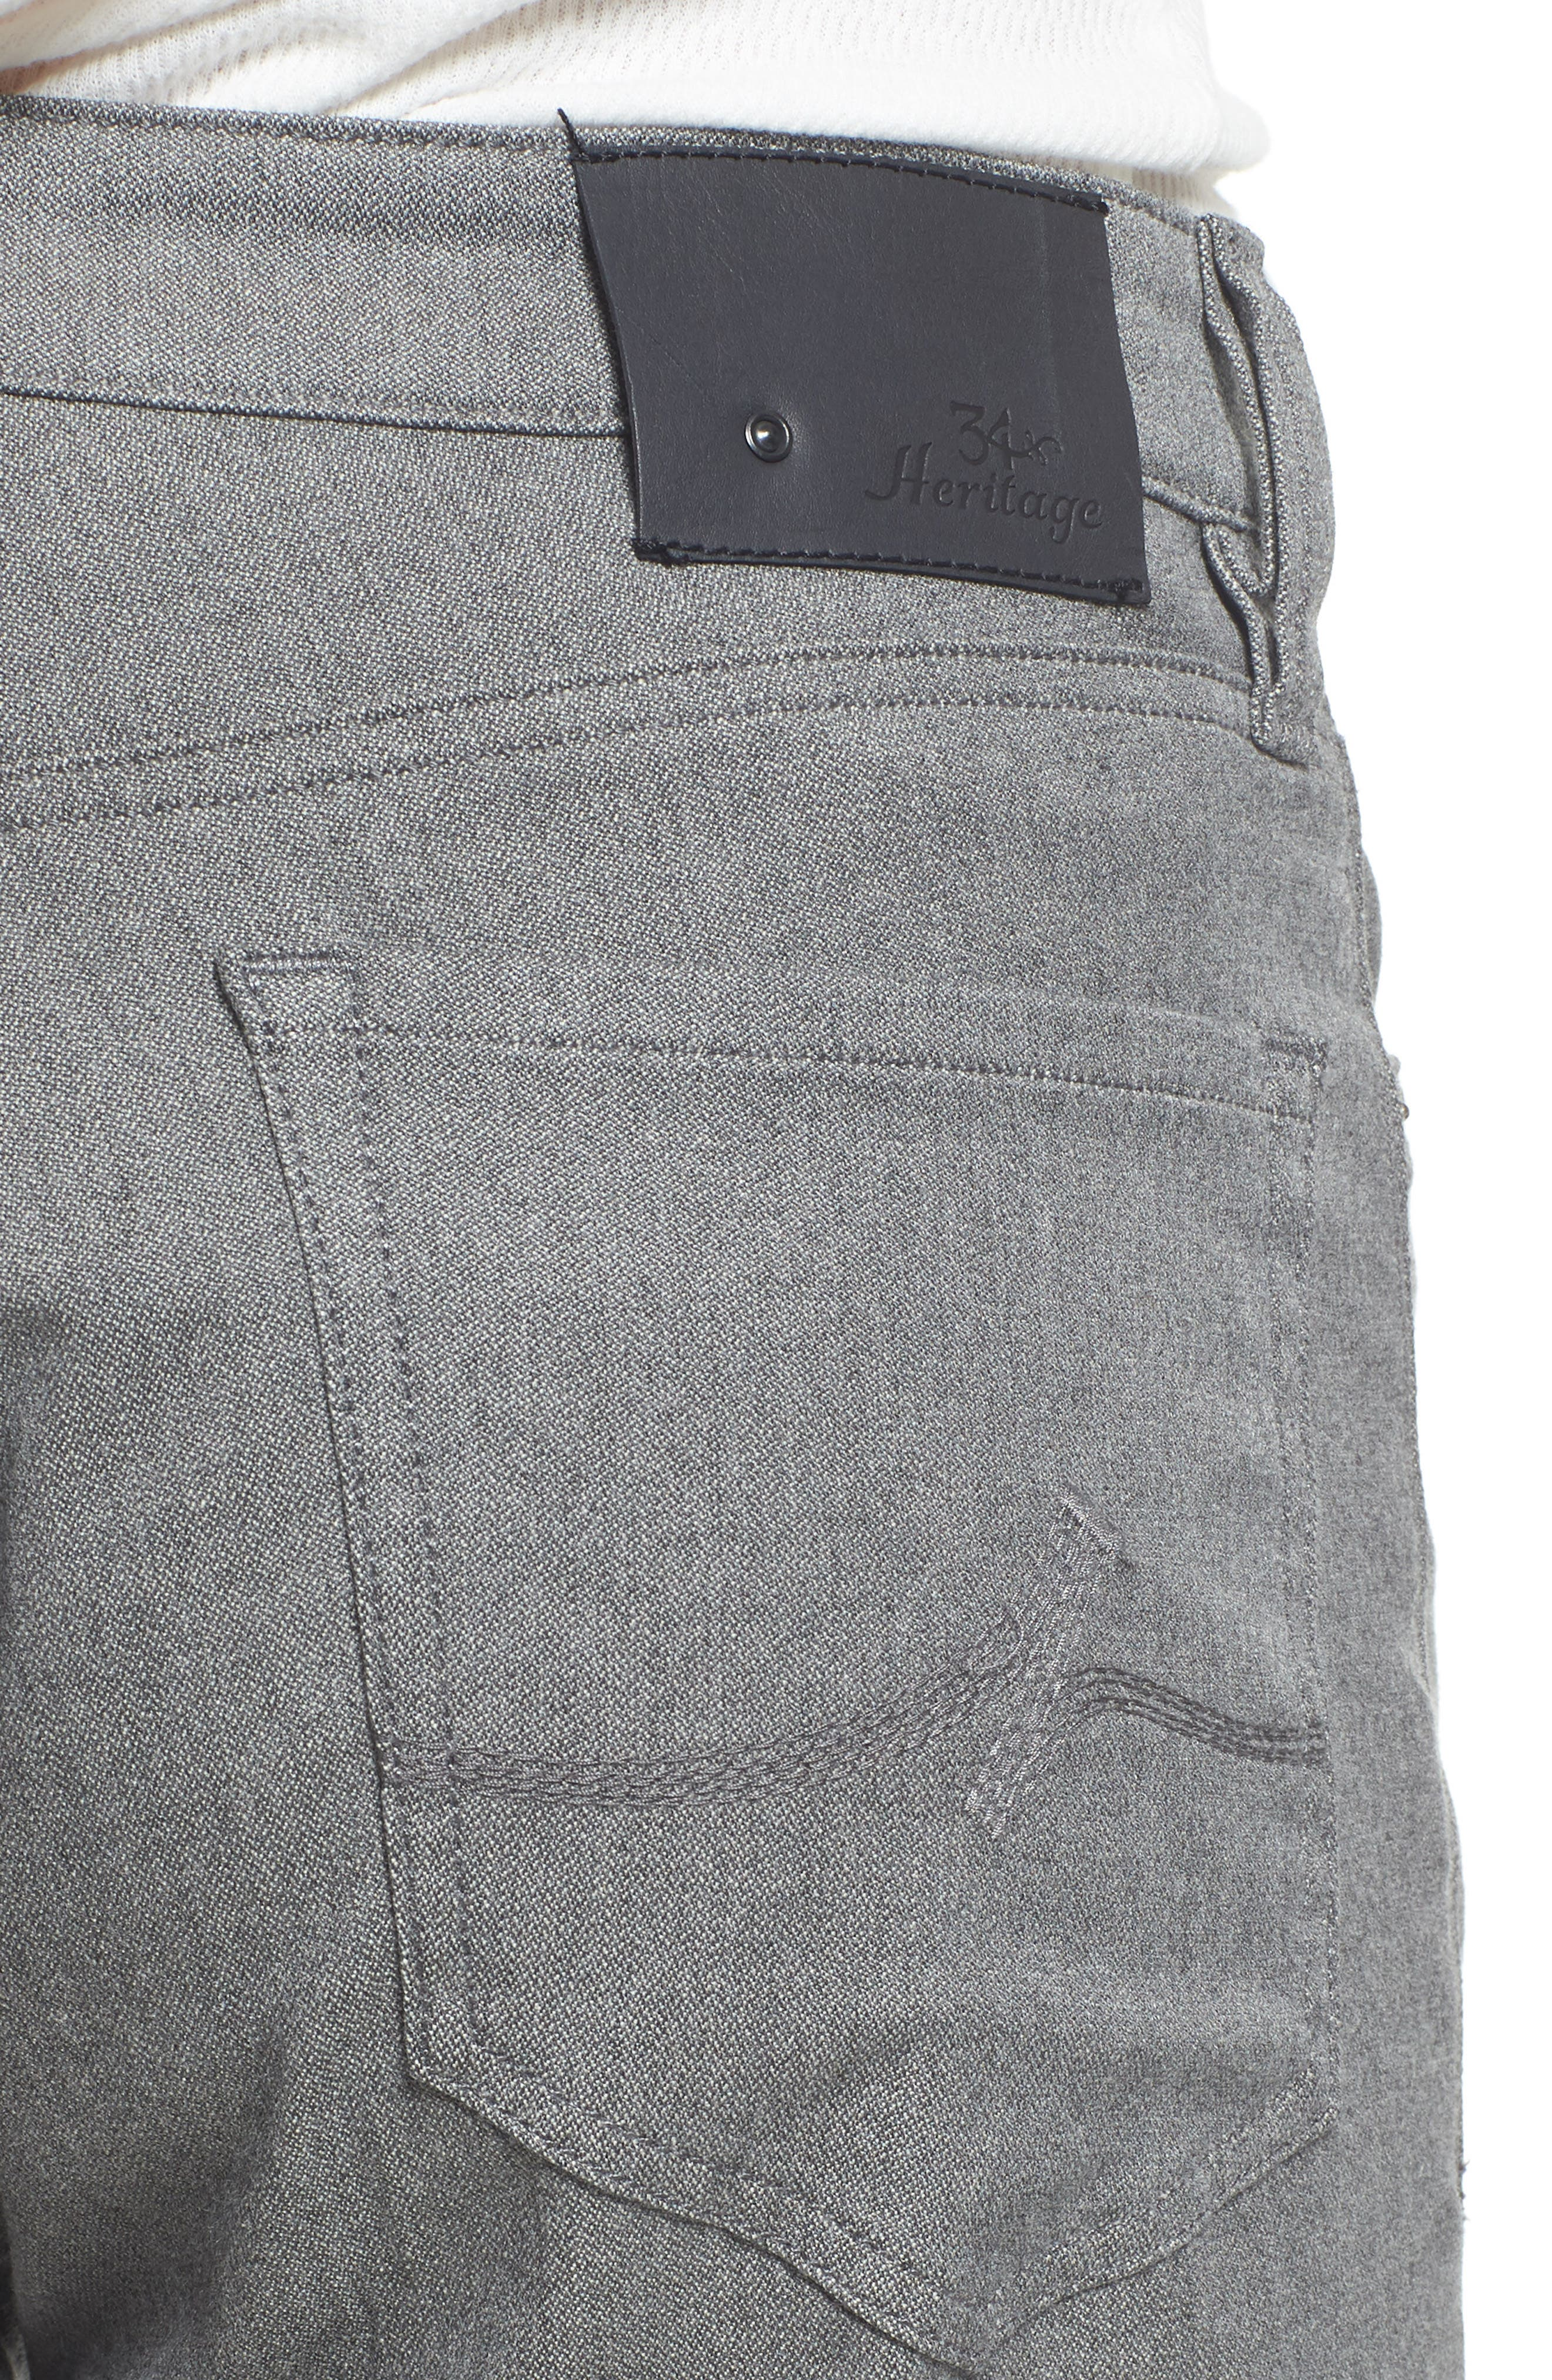 Charisma Relaxed Fit Jeans,                             Alternate thumbnail 4, color,                             020